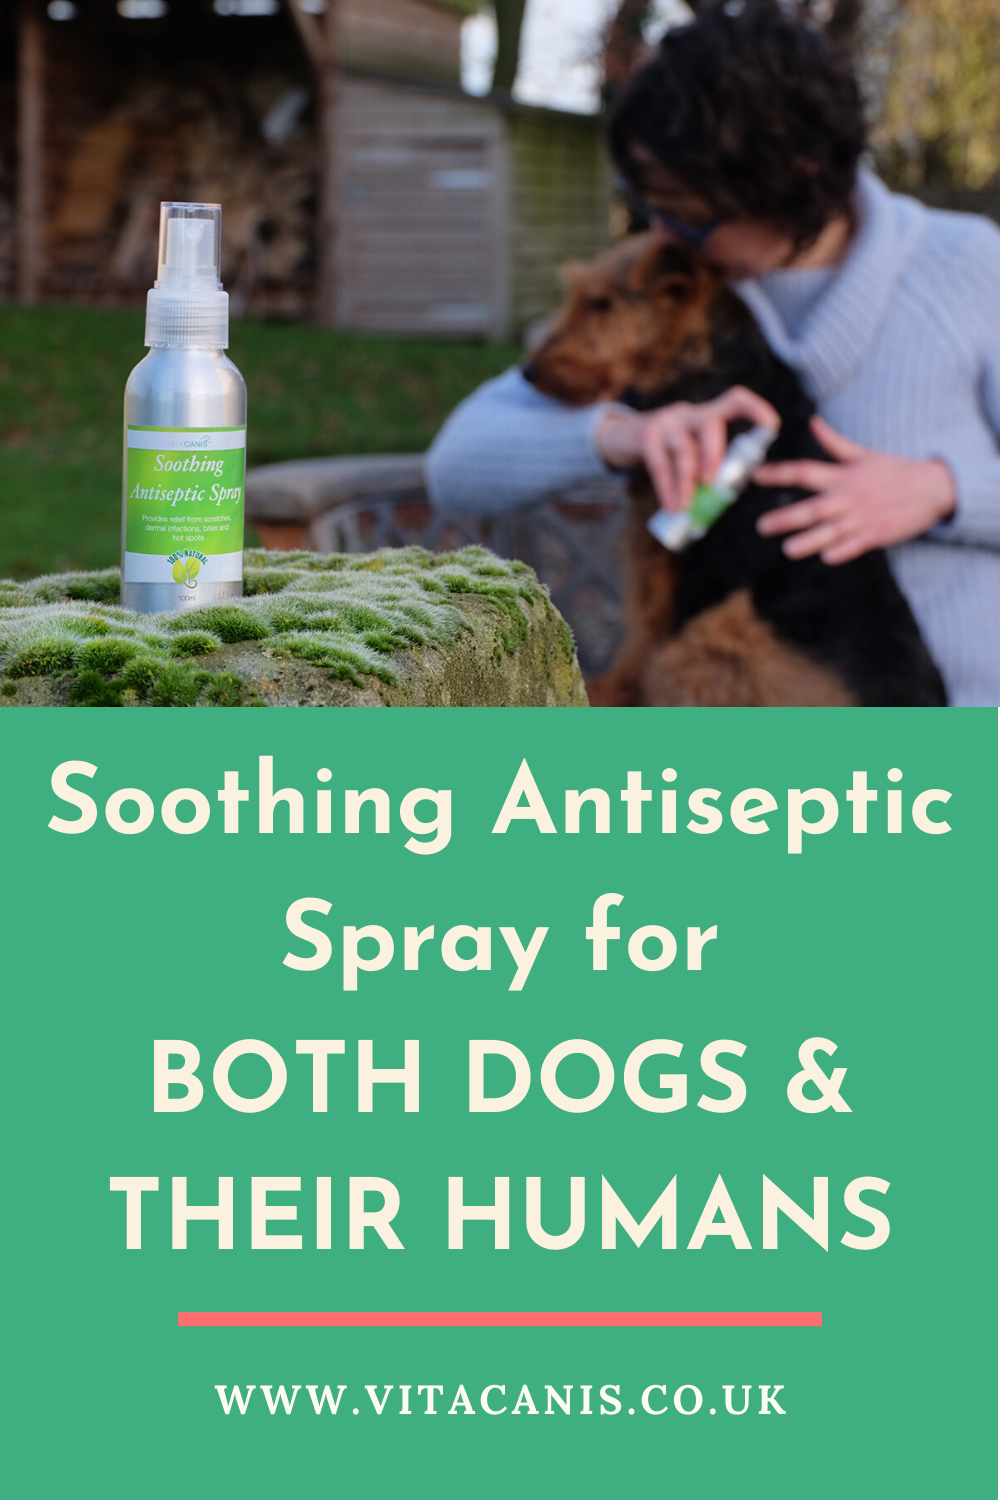 Vita Canis Soothing Antiseptic Spray Natural Antiseptic